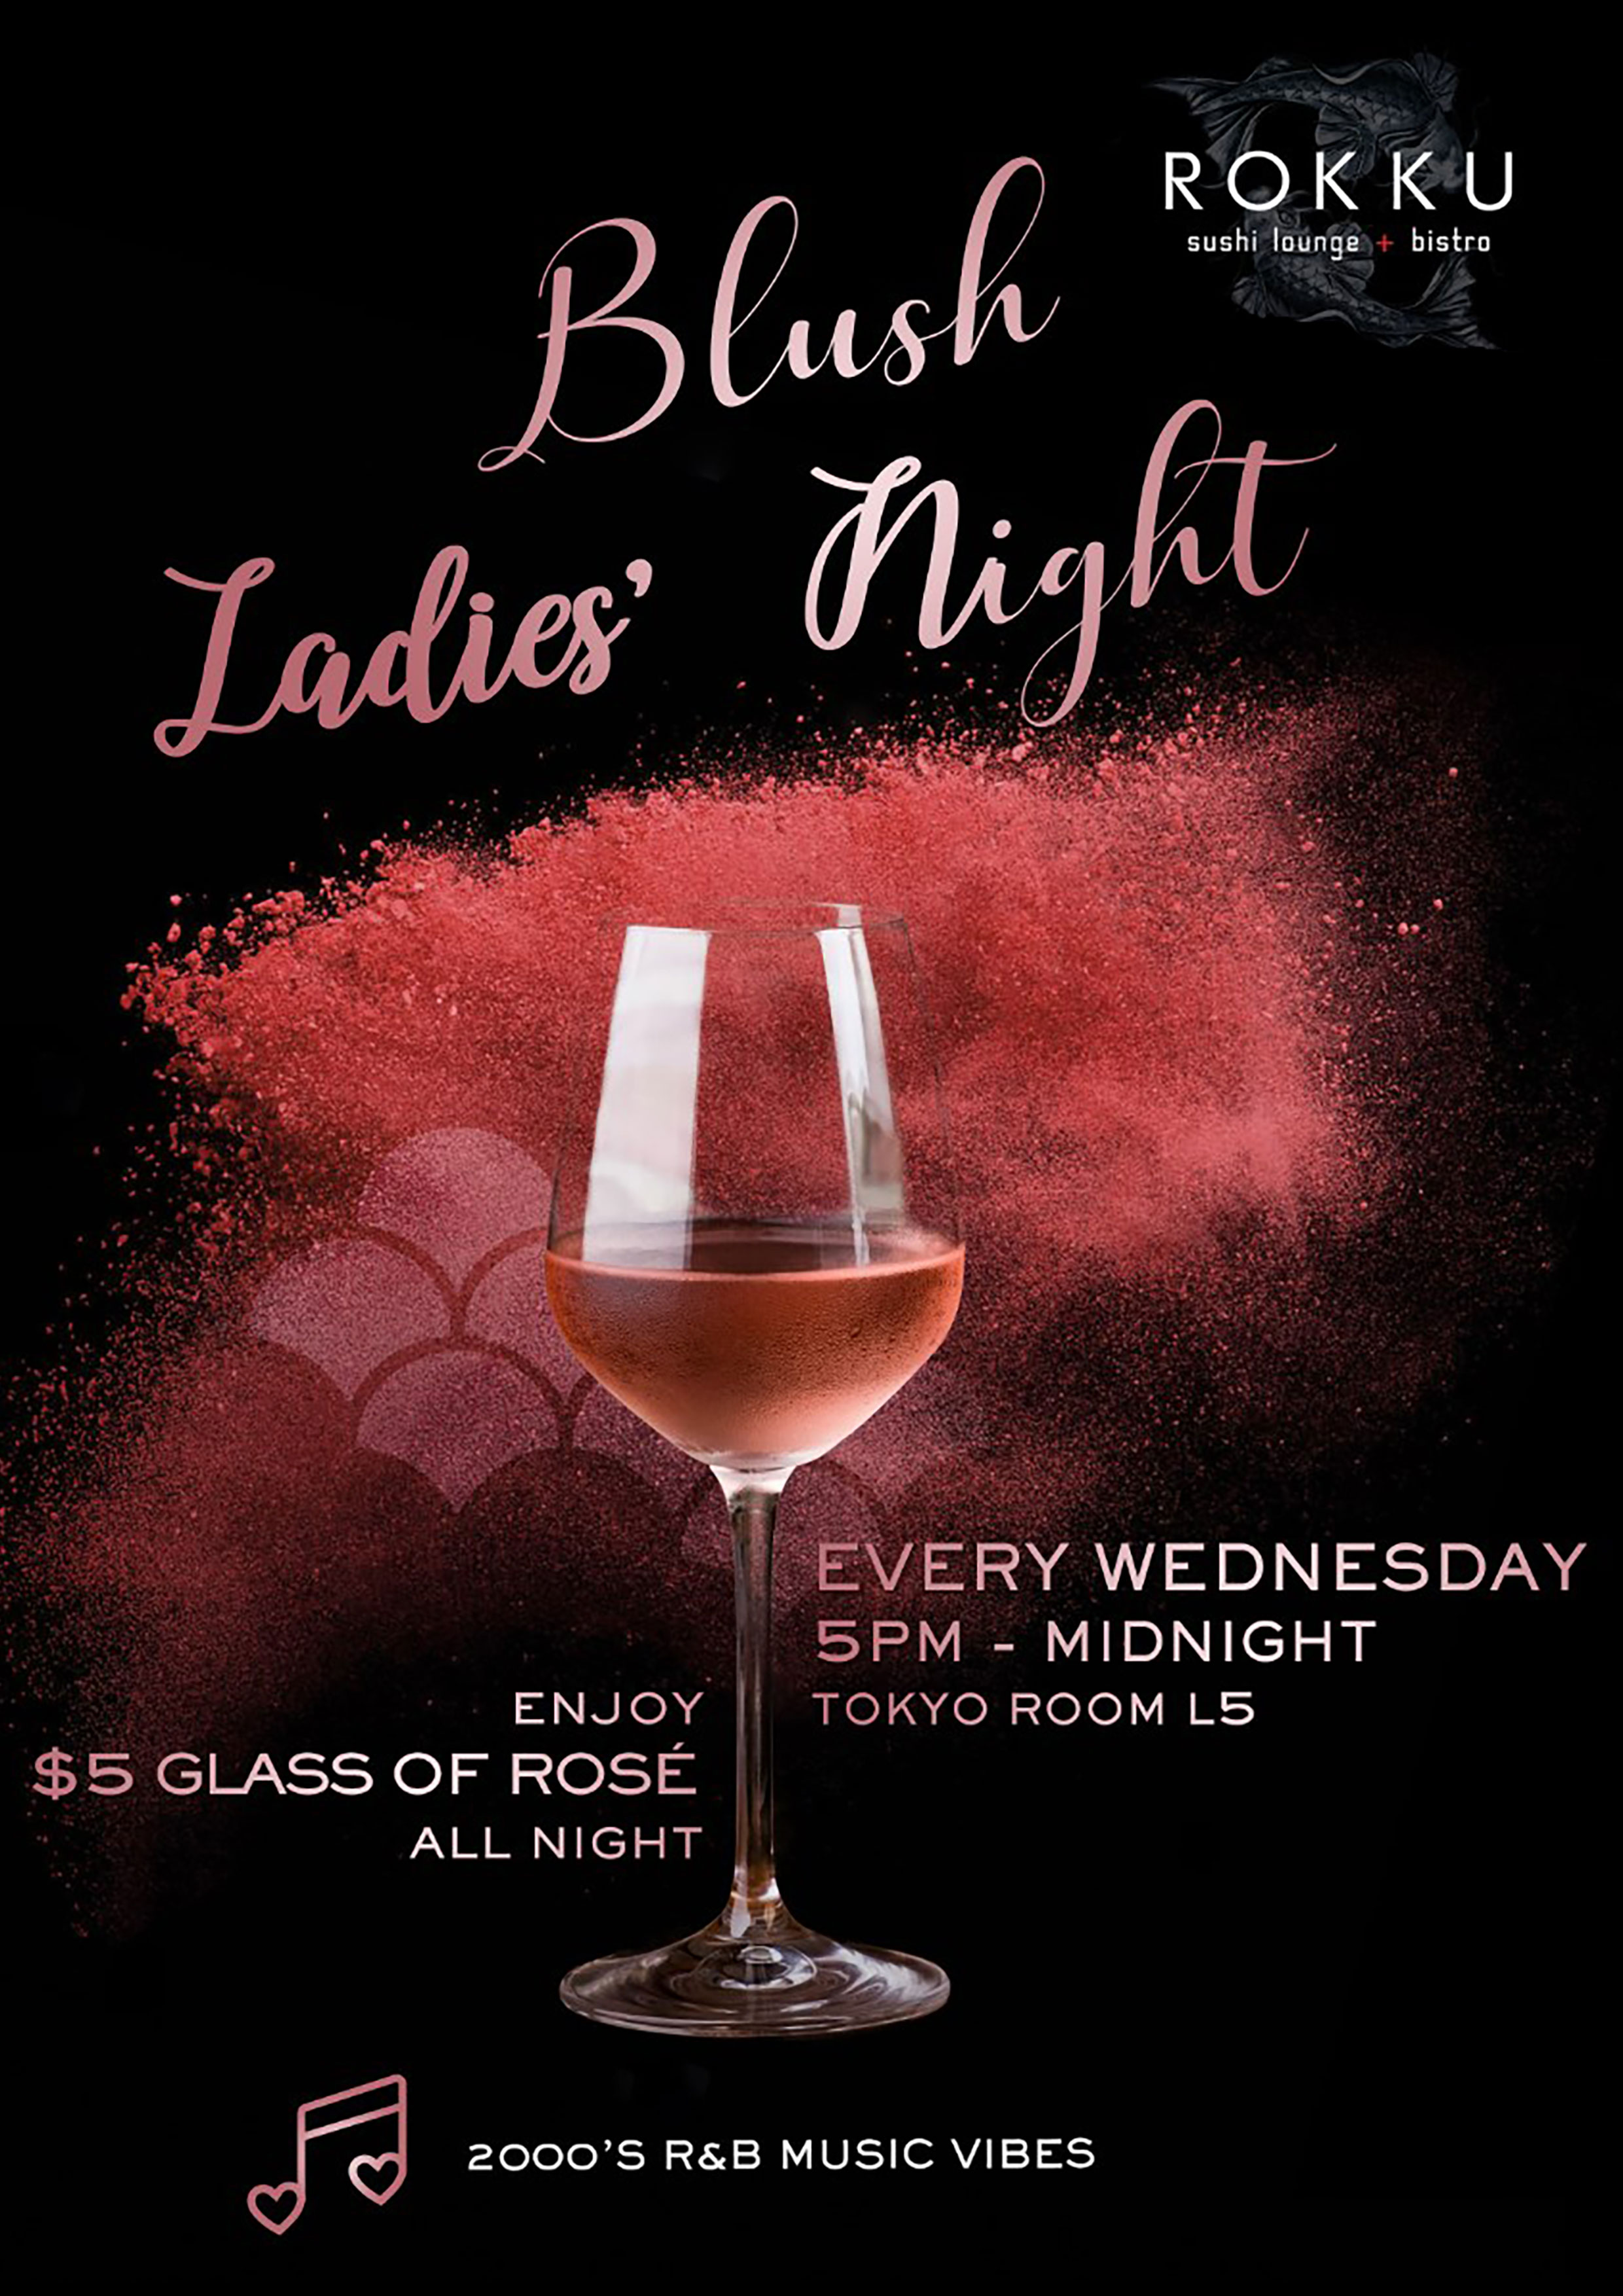 LADIES NIGHT WEDNESDAYS AT ROKKU ON APRIL 14TH